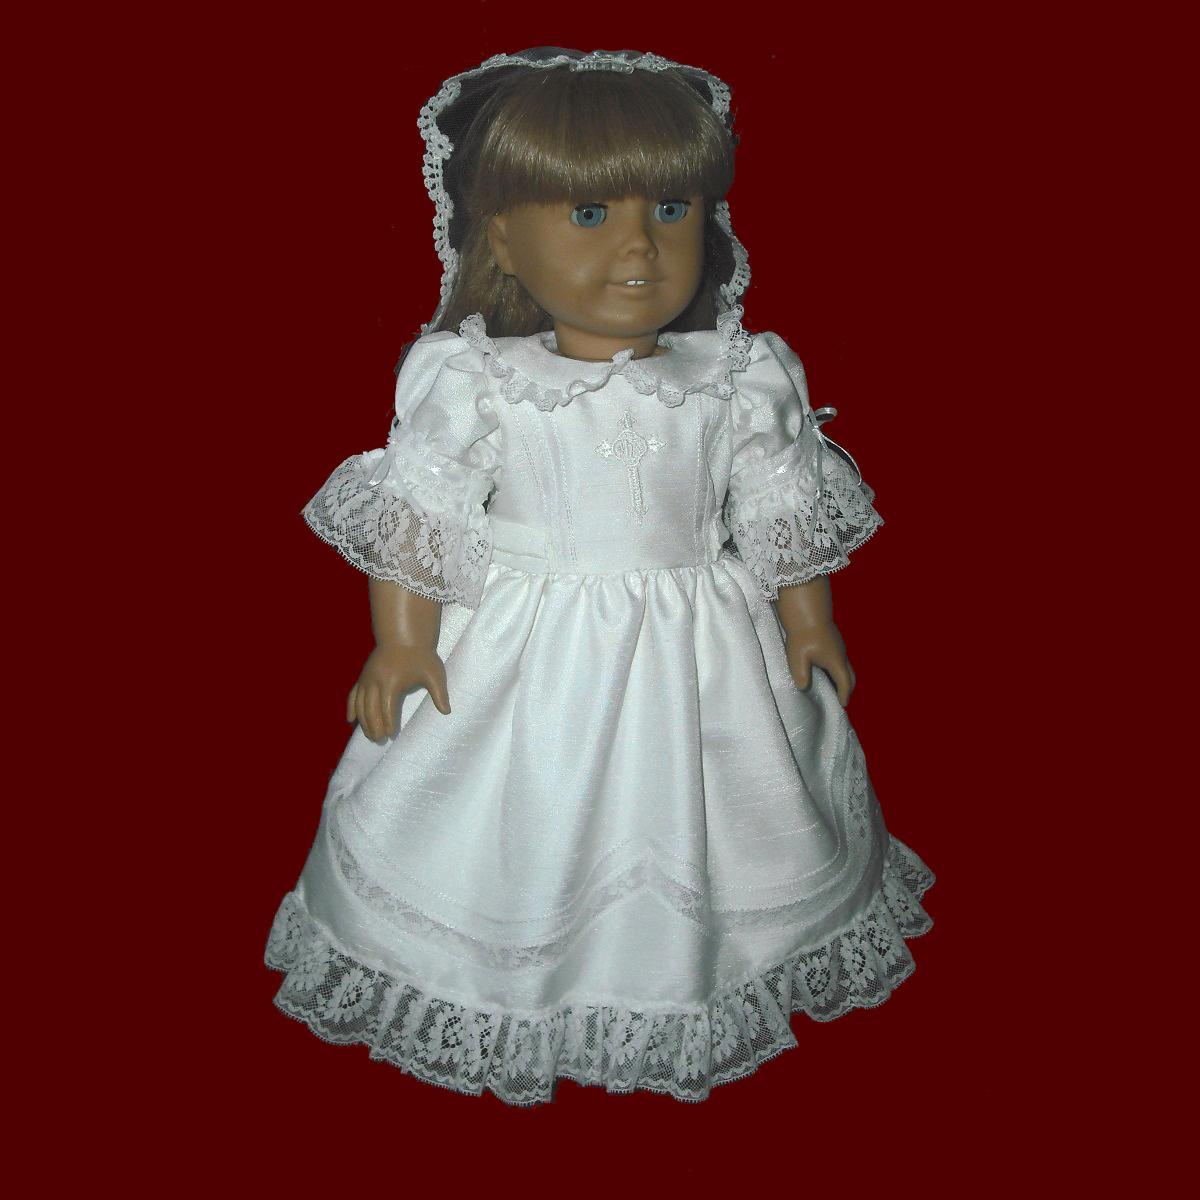 Scalloped Lace American Girl Communion Dress & Veil